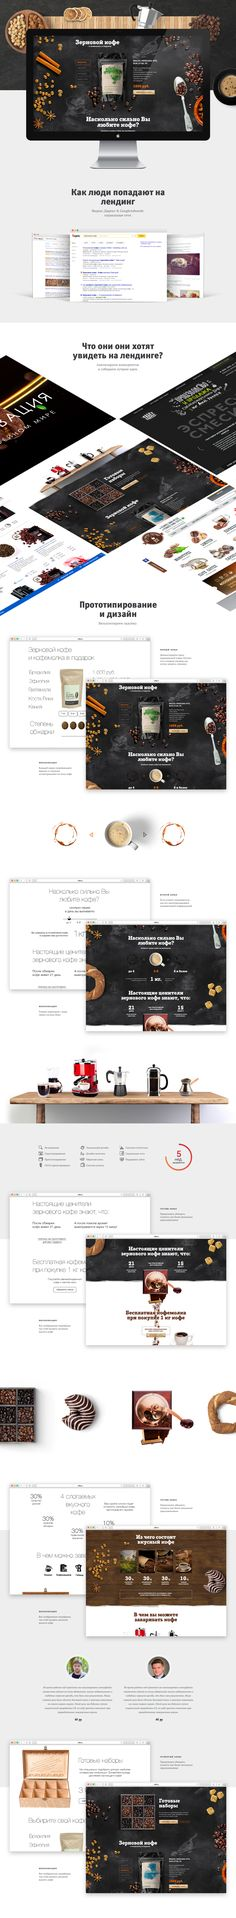 КофеВсем on Behance App Ui Design, Interface Design, Restaurant Website, Landing Page Design, Le Web, Website Design Inspiration, Mobile Design, Business Website, Website Ideas